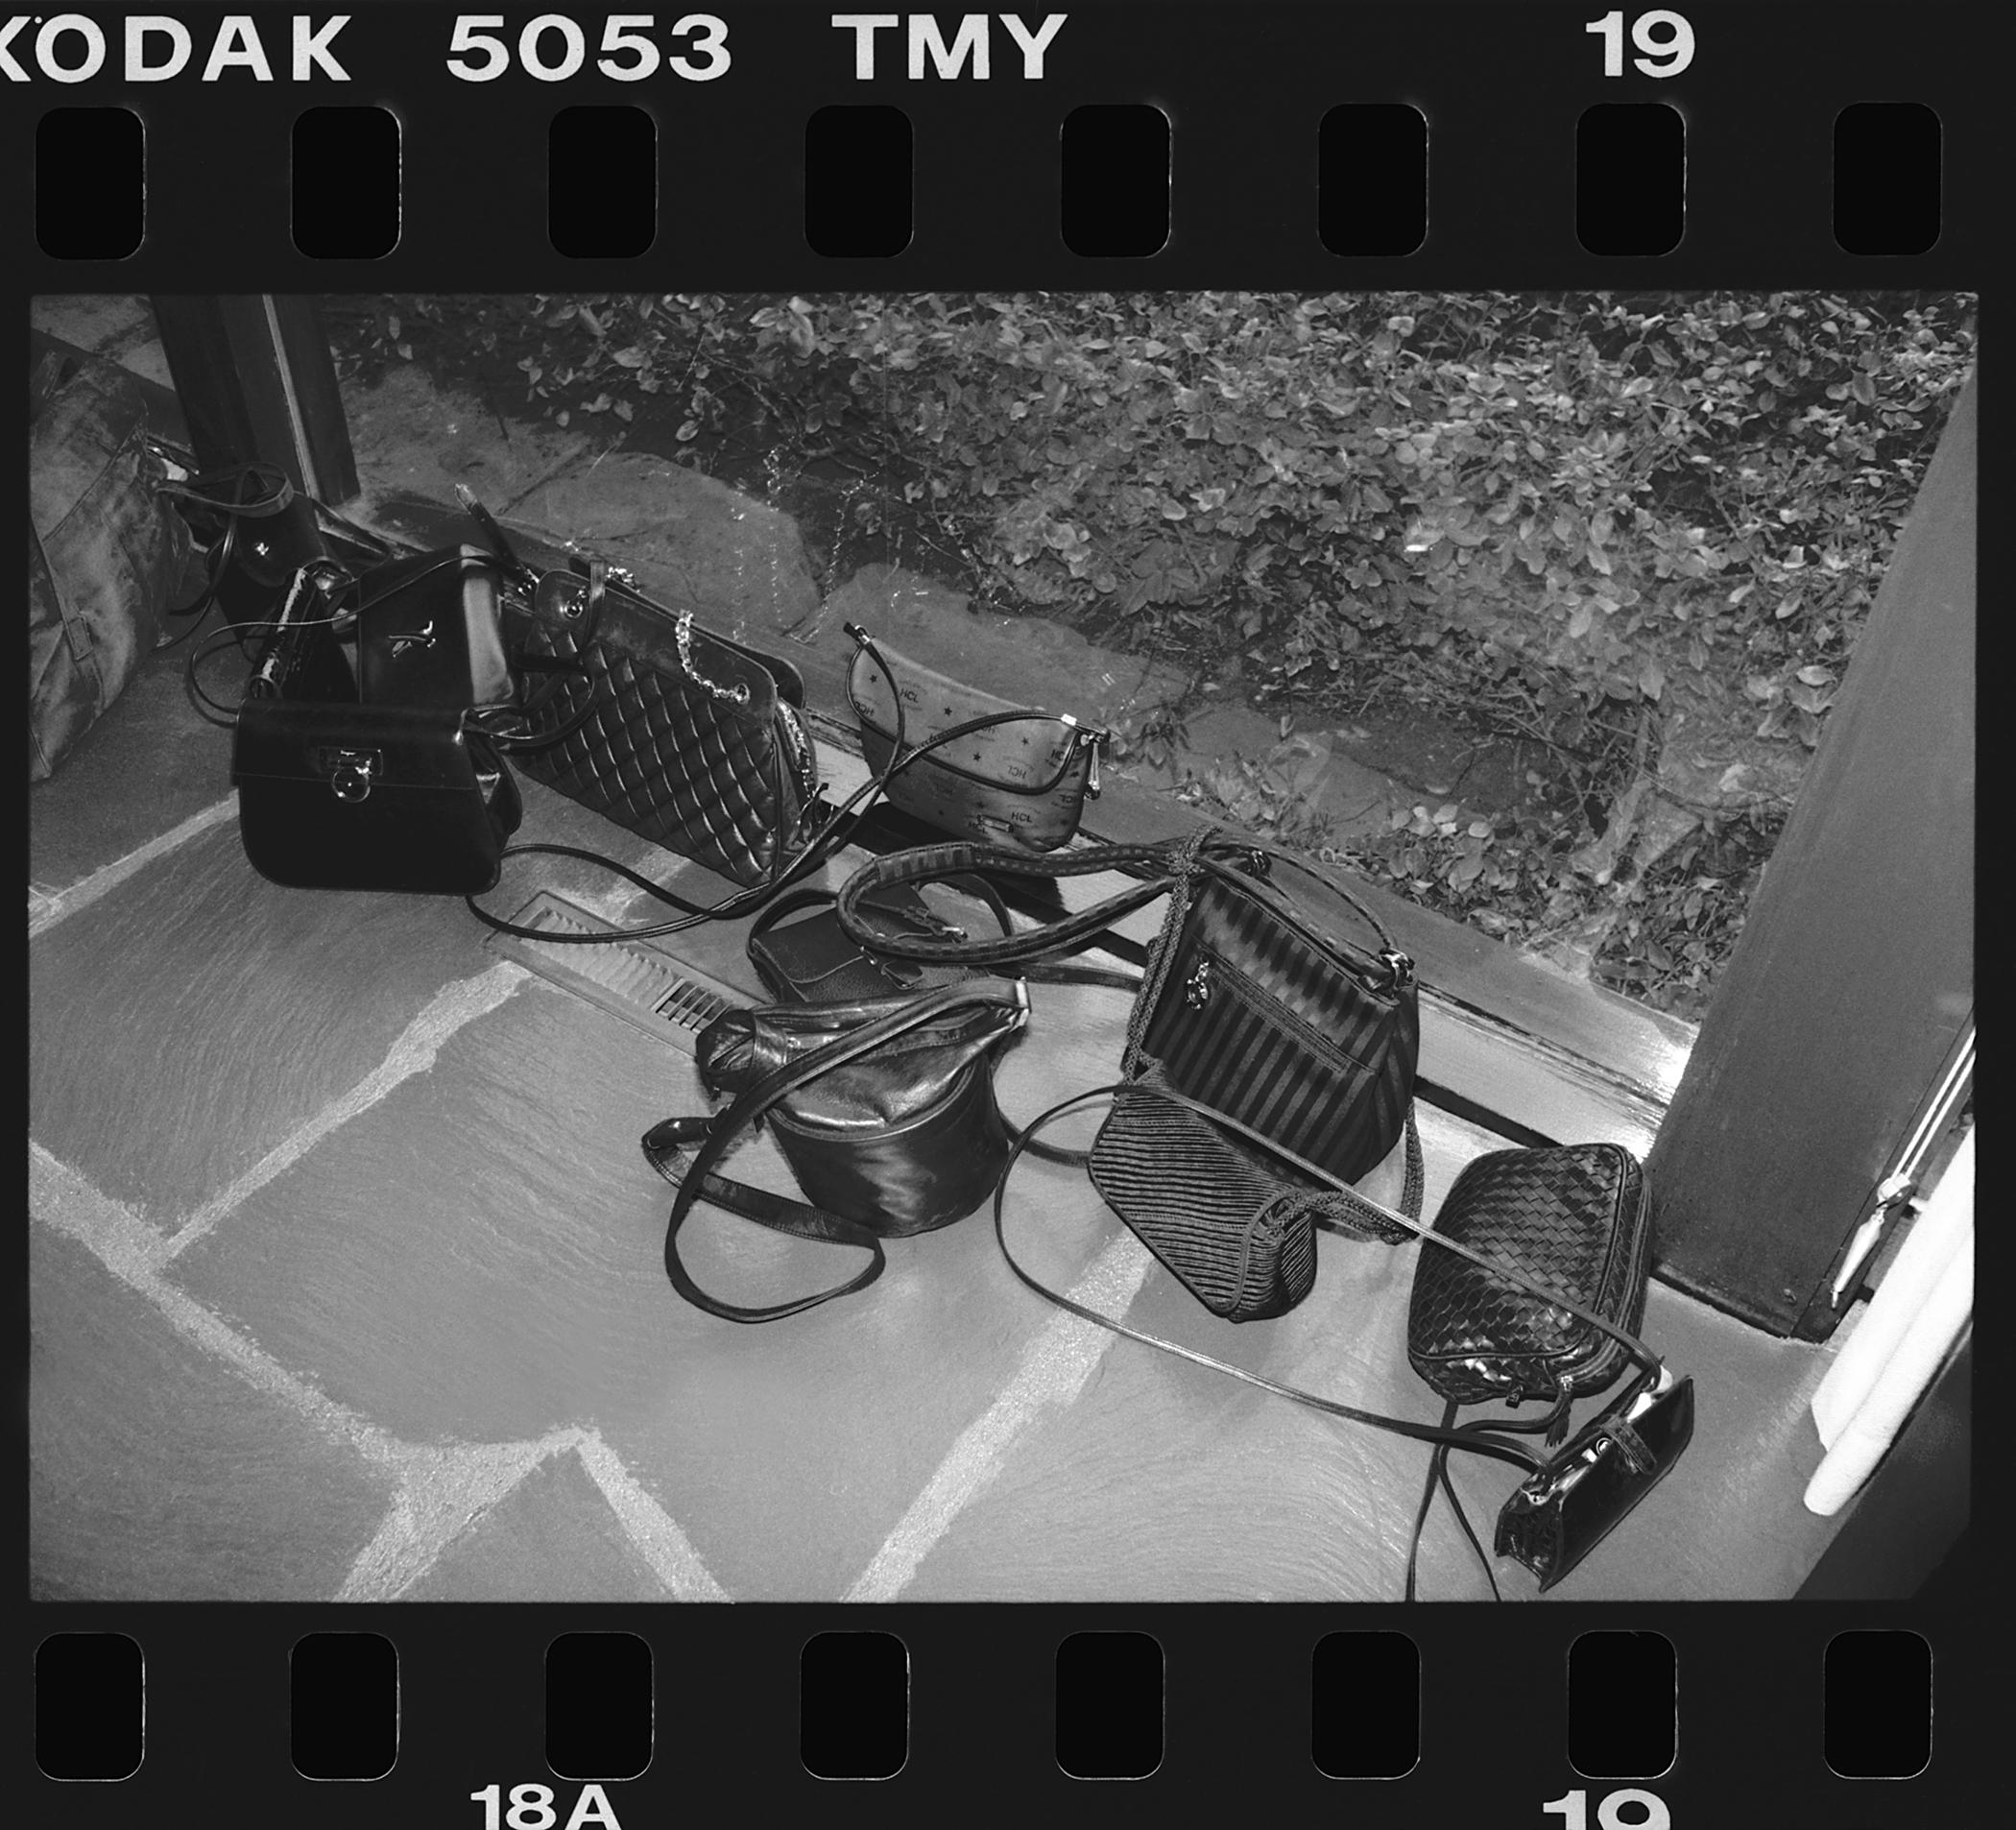 This black-and-white 35 mm film frame depicts nine purses of varying shapes and sizes on a stone floor next to a glass window.